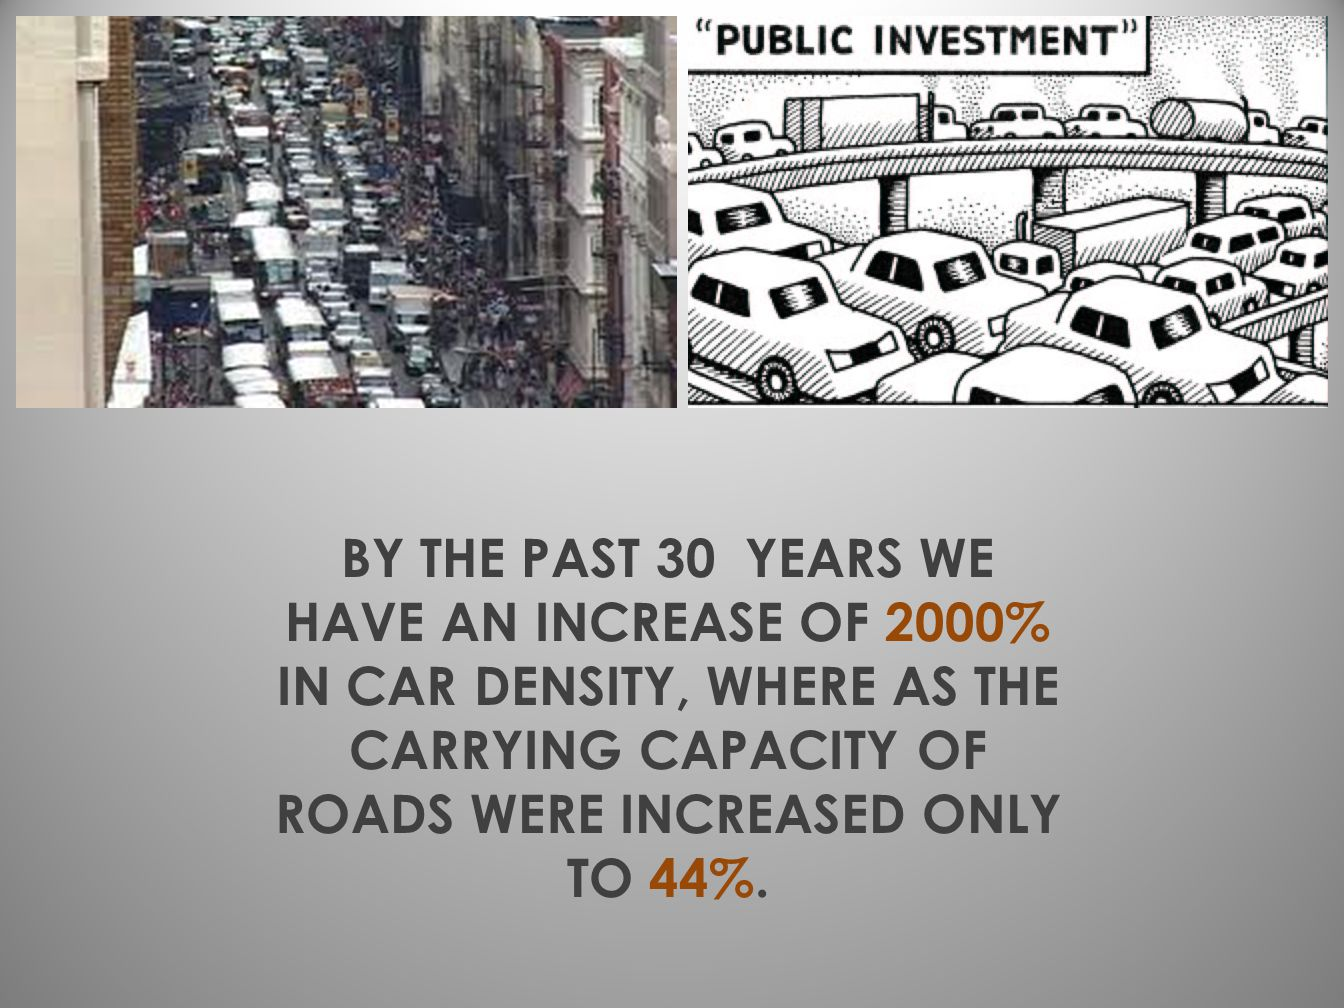 BY THE PAST 30 YEARS WE HAVE AN INCREASE OF 2000% IN CAR DENSITY, WHERE AS THE CARRYING CAPACITY OF ROADS WERE INCREASED ONLY TO 44%.